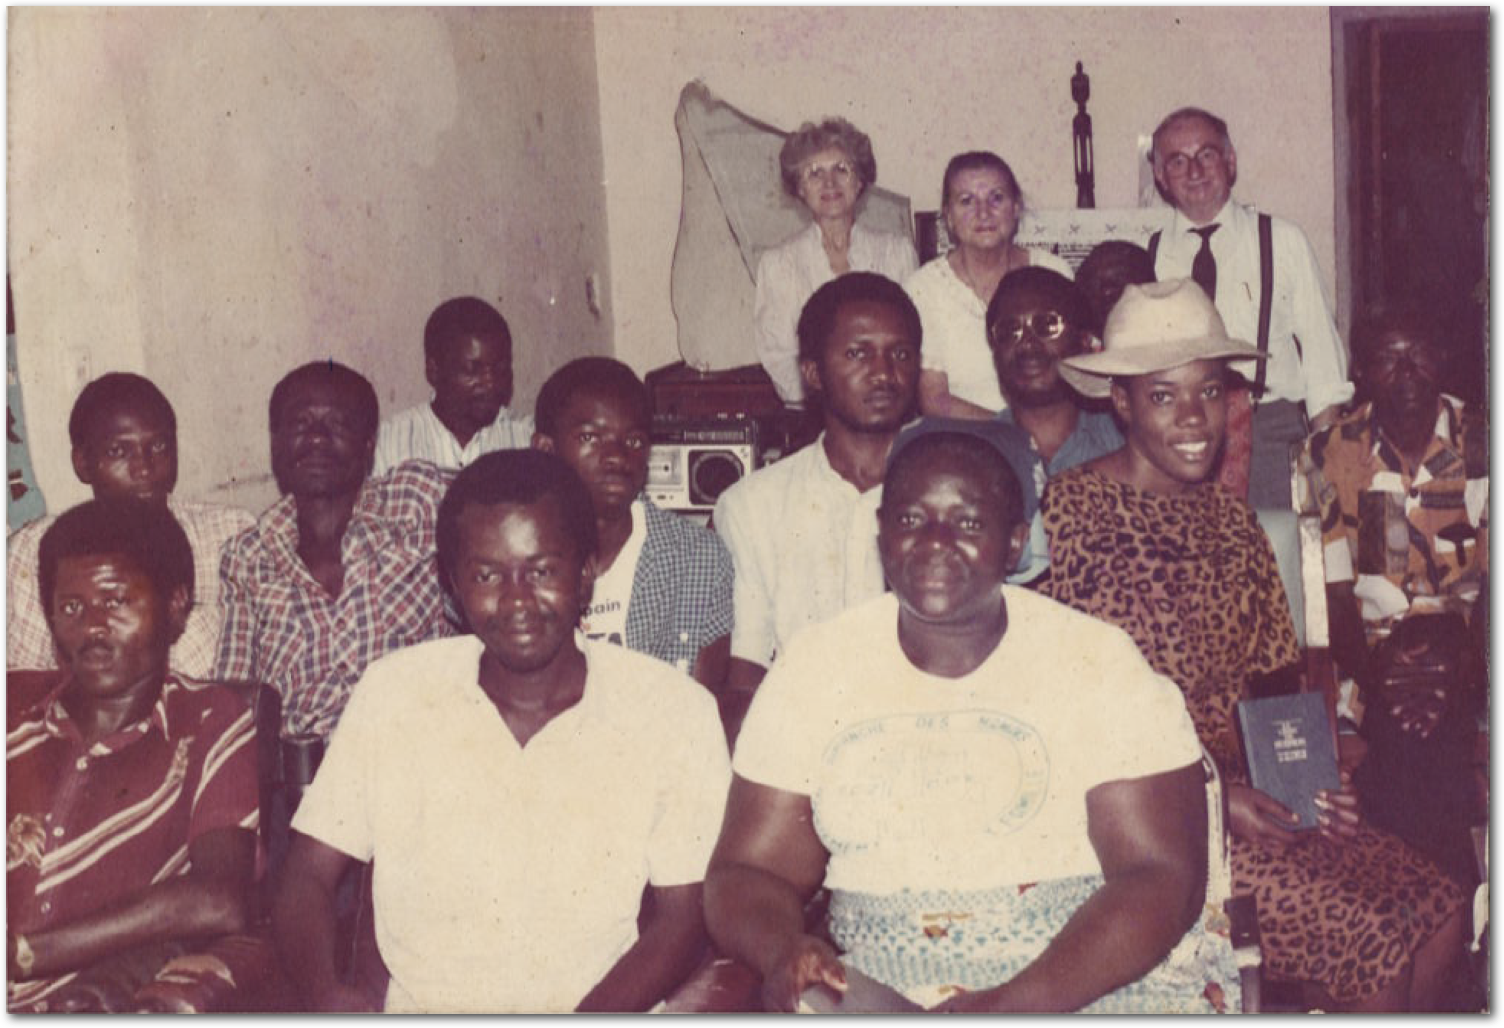 A group from Mucioko Banza's study group being taught by Church missionaries in 1986 in Kinshasa, Zaire, pose for a photo.